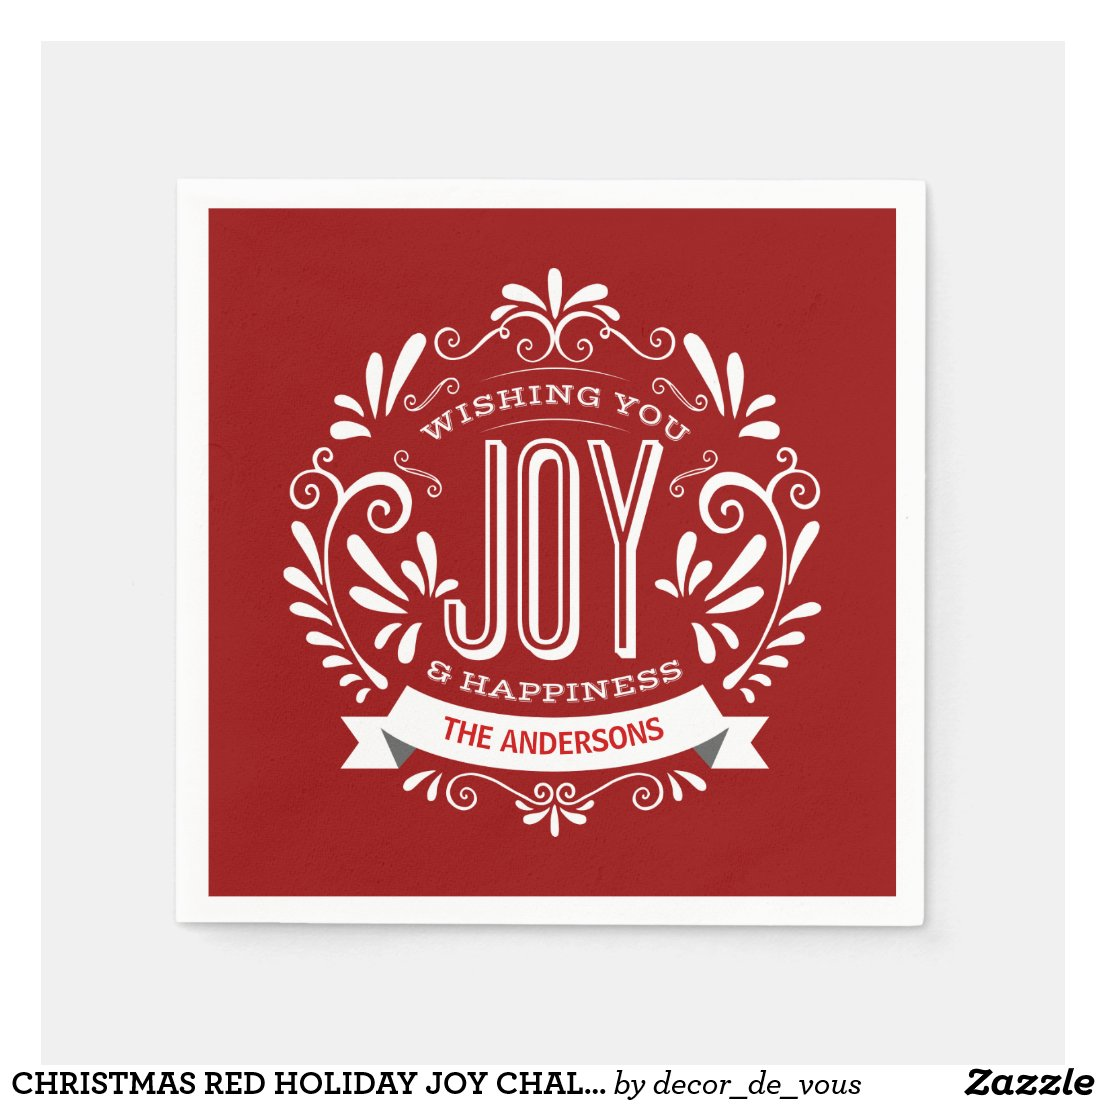 CHRISTMAS RED HOLIDAY JOY CHALKBOARD PERSONALIZED NAPKIN